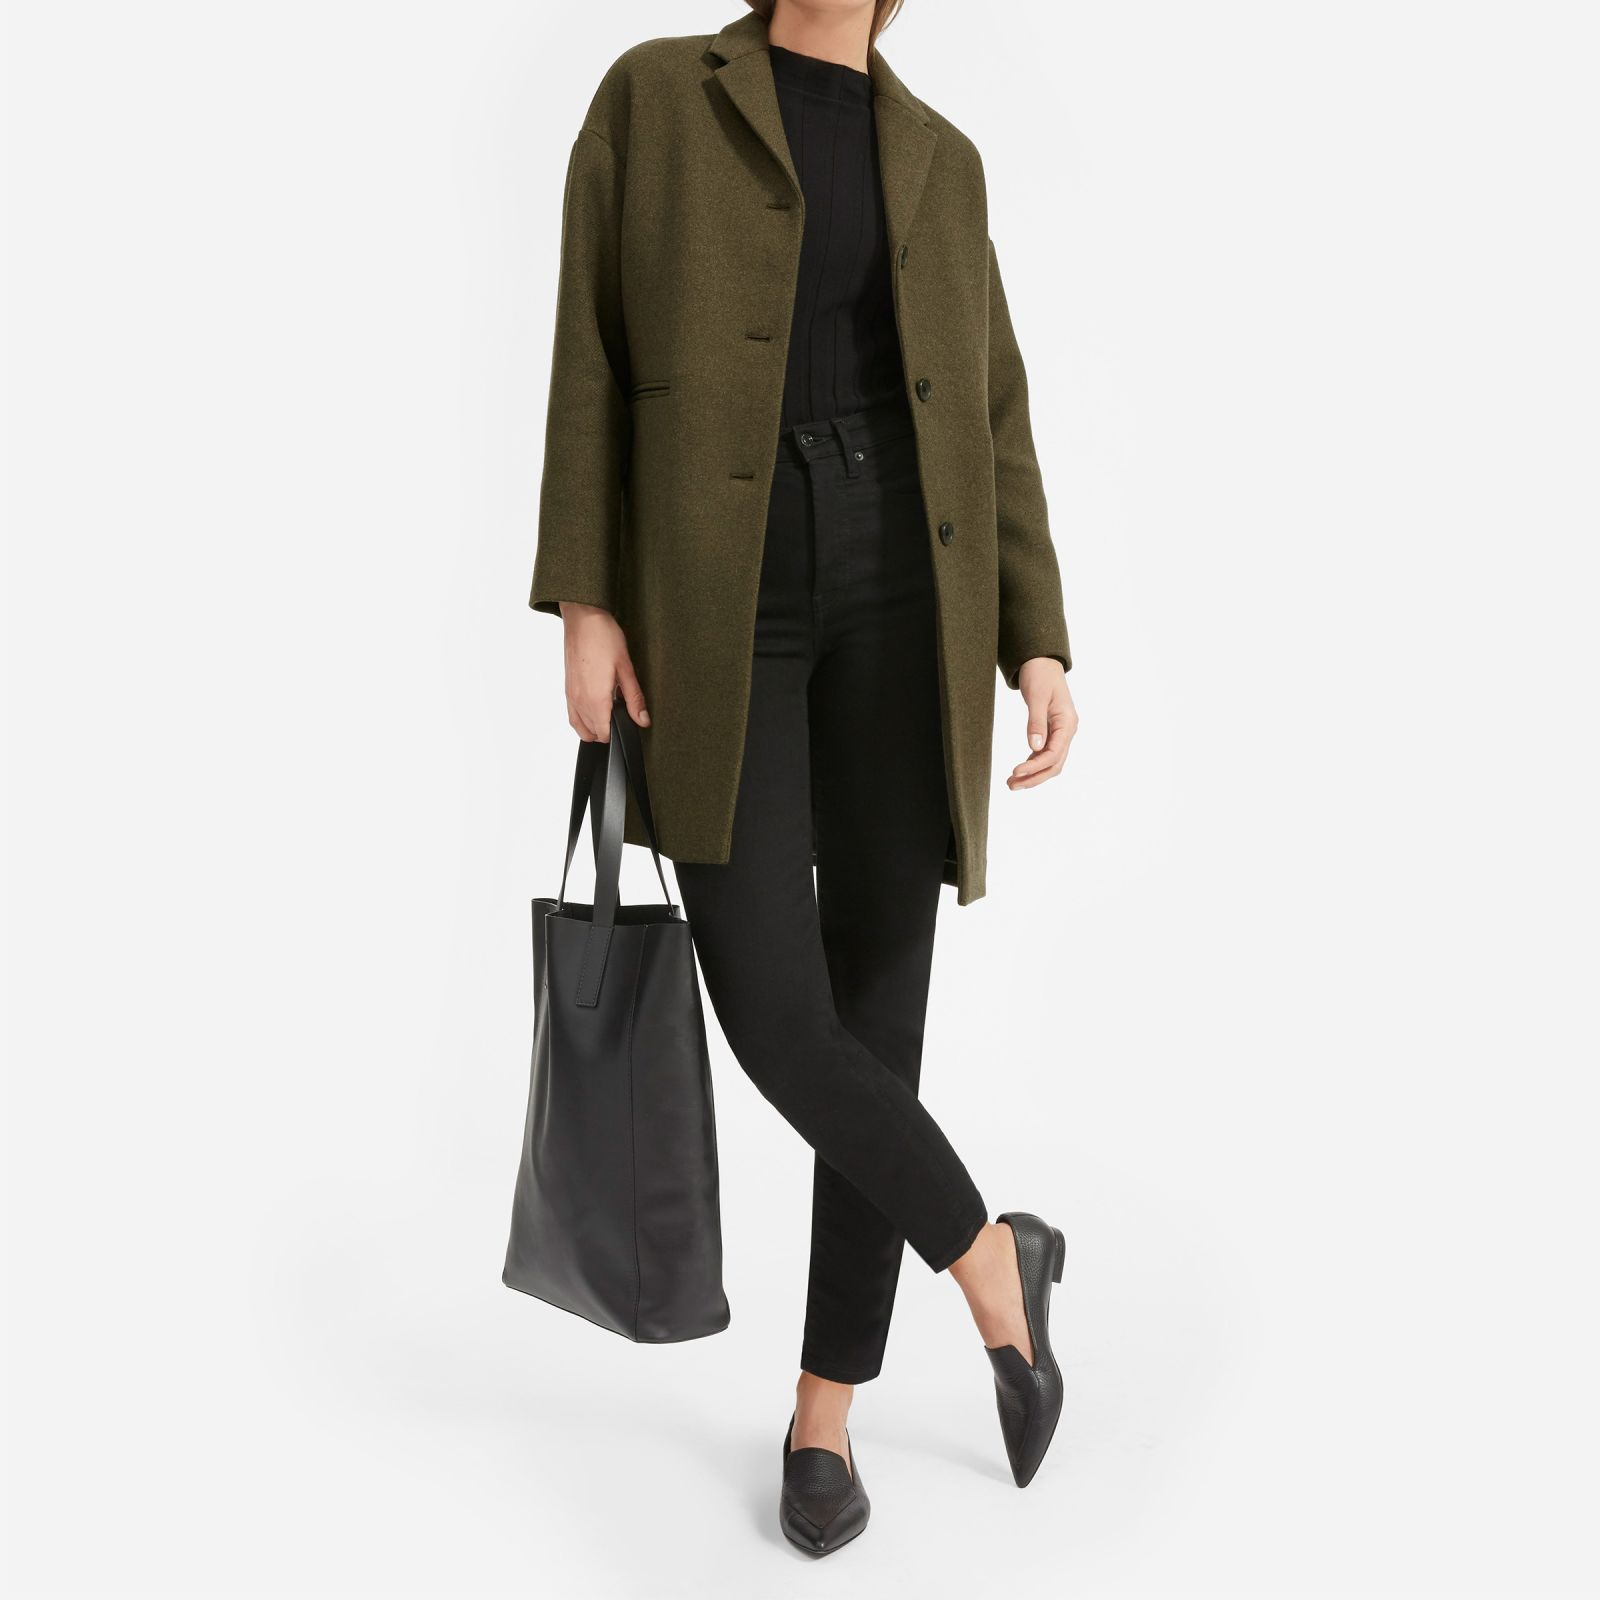 women's cocoon coat by everlane in peat, size 14